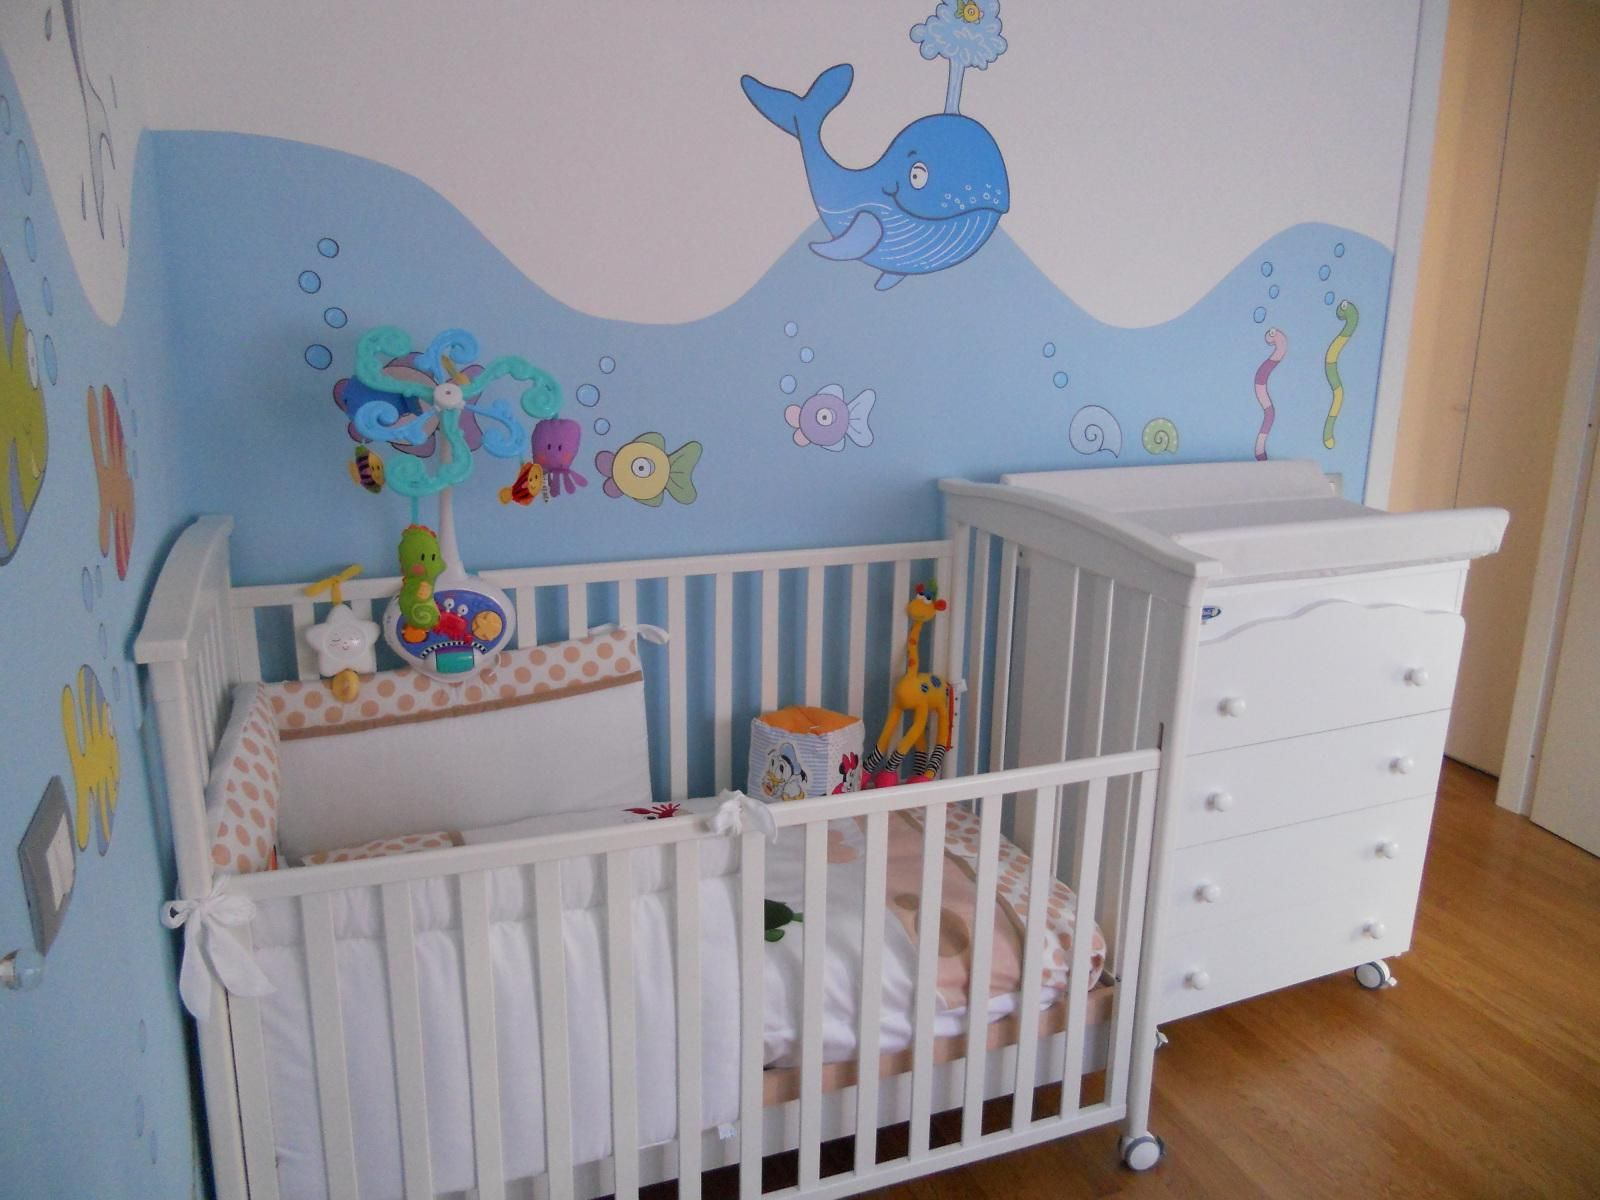 Superior Stunning Baby Nursery Room Design With Awesome Aquarium Wall Decal Idea As  Well White Wooden Crib Baby Corner Beside White Drawer Vanity Also Wooden  Floor ...